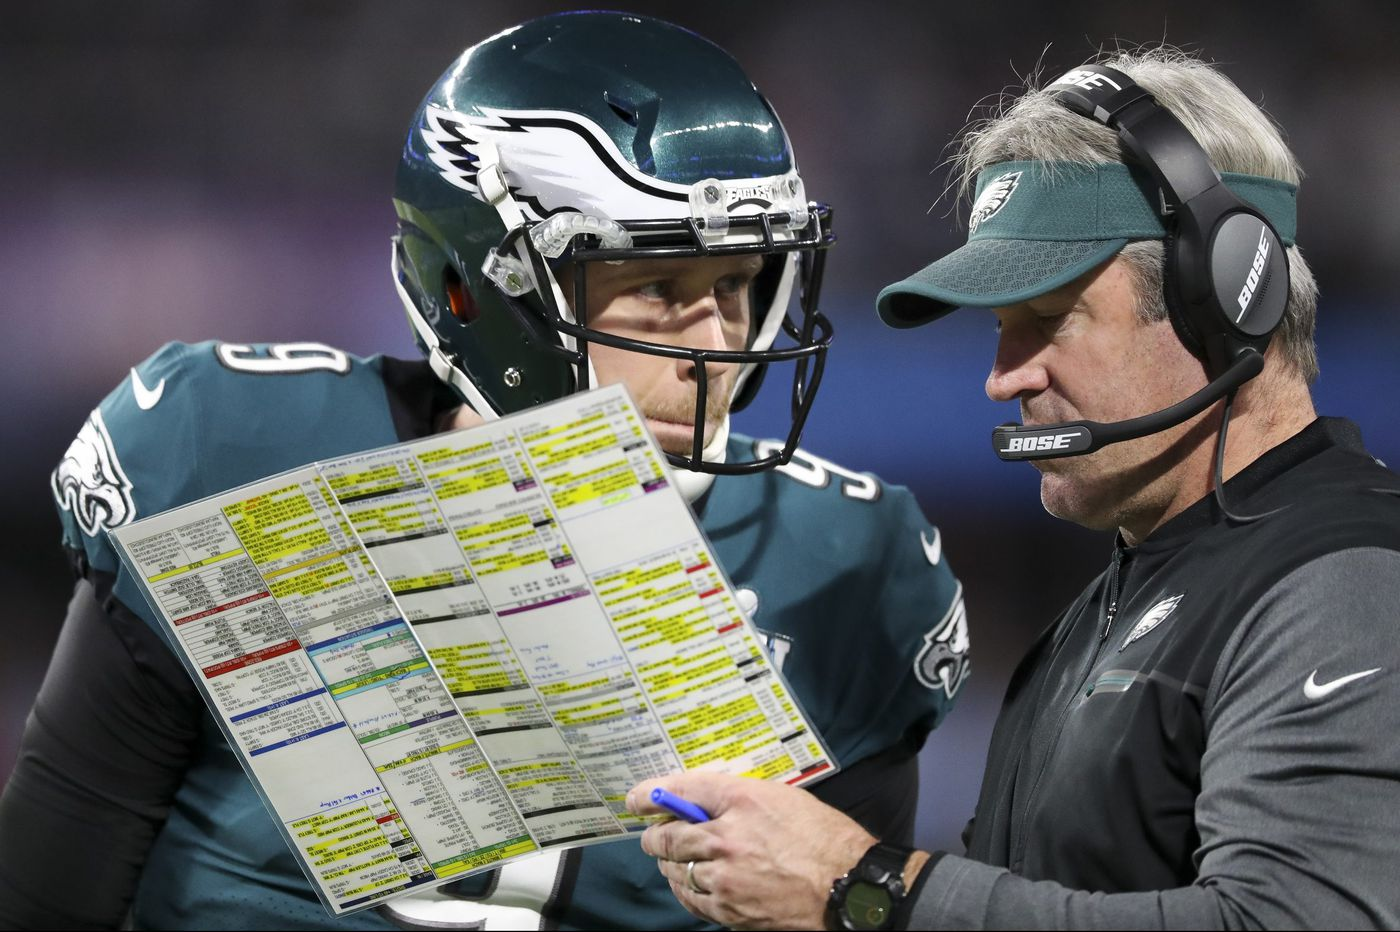 Eagles defenders know how hard it is to stop the team's run-pass option plays